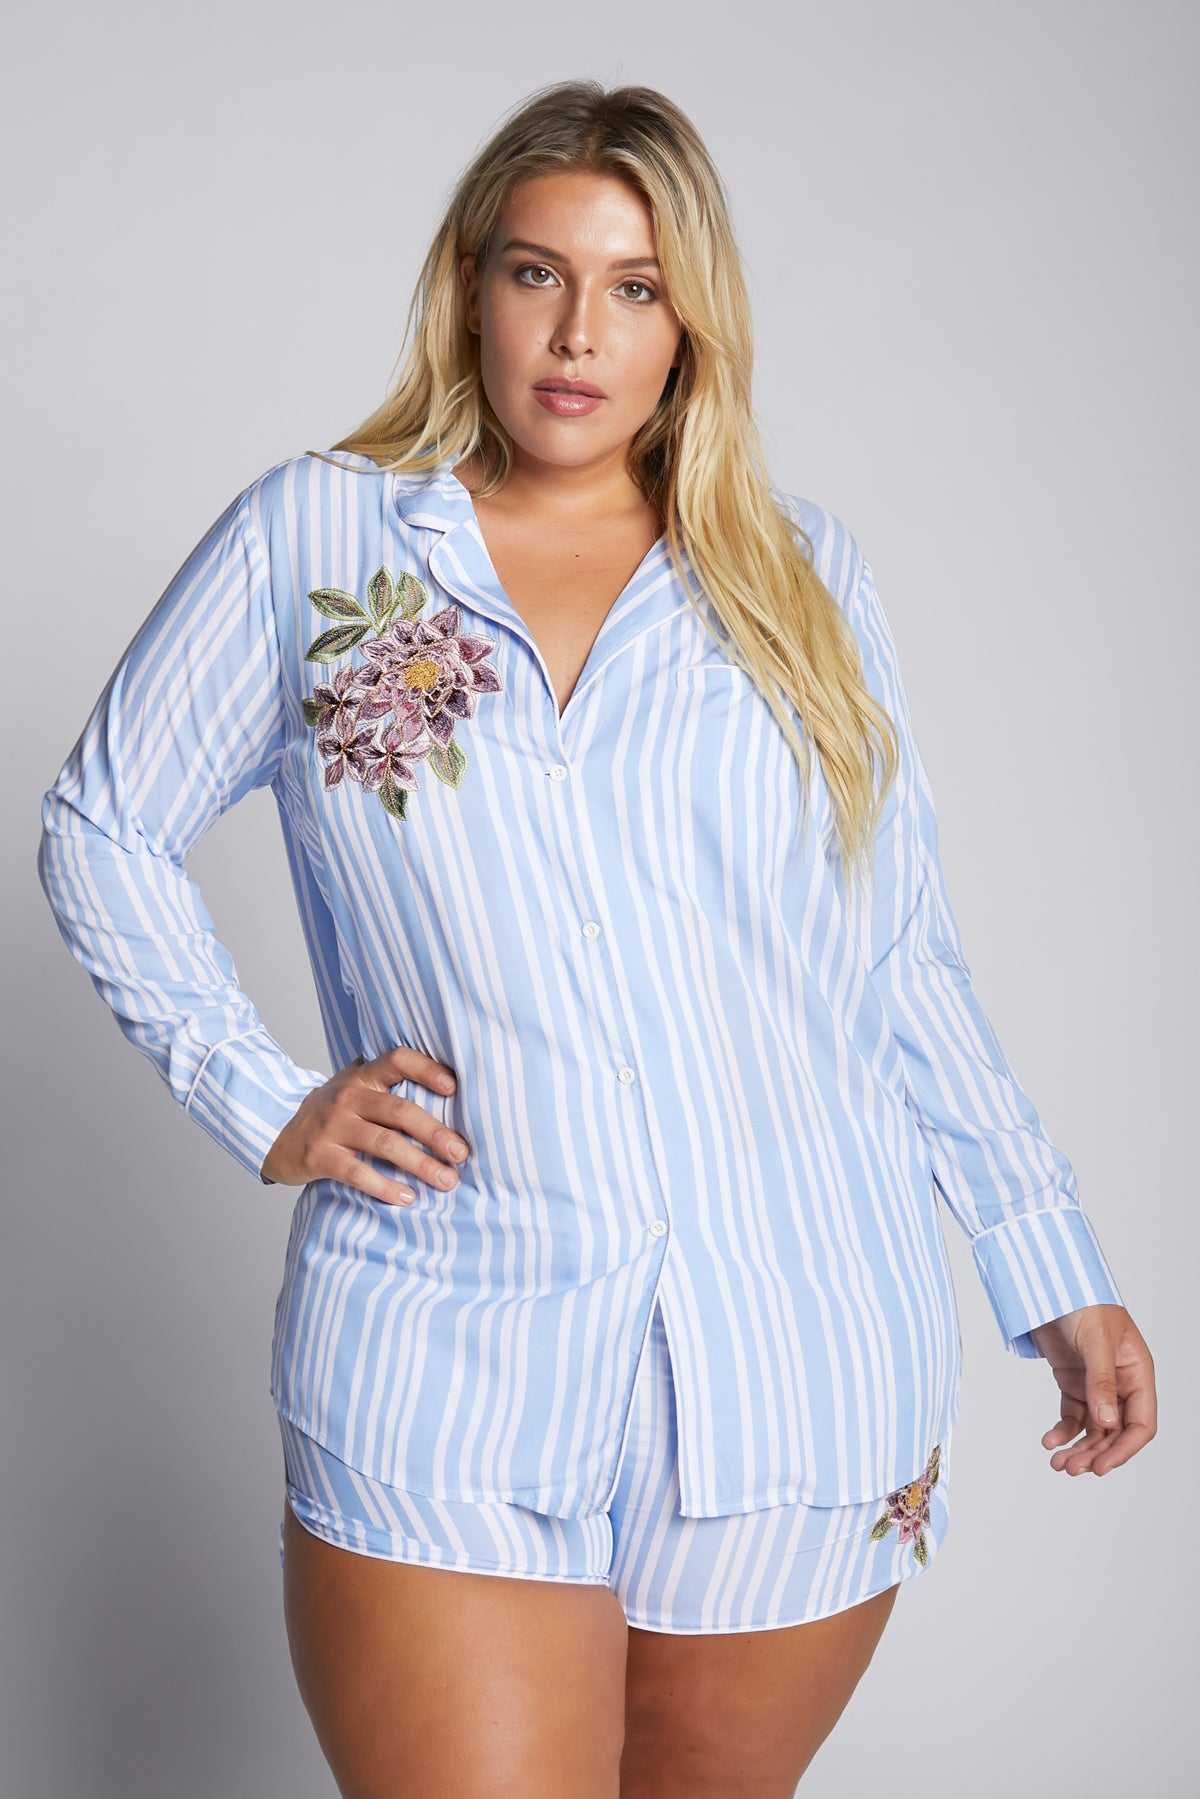 Blue, White And Pinstripes Pj Top